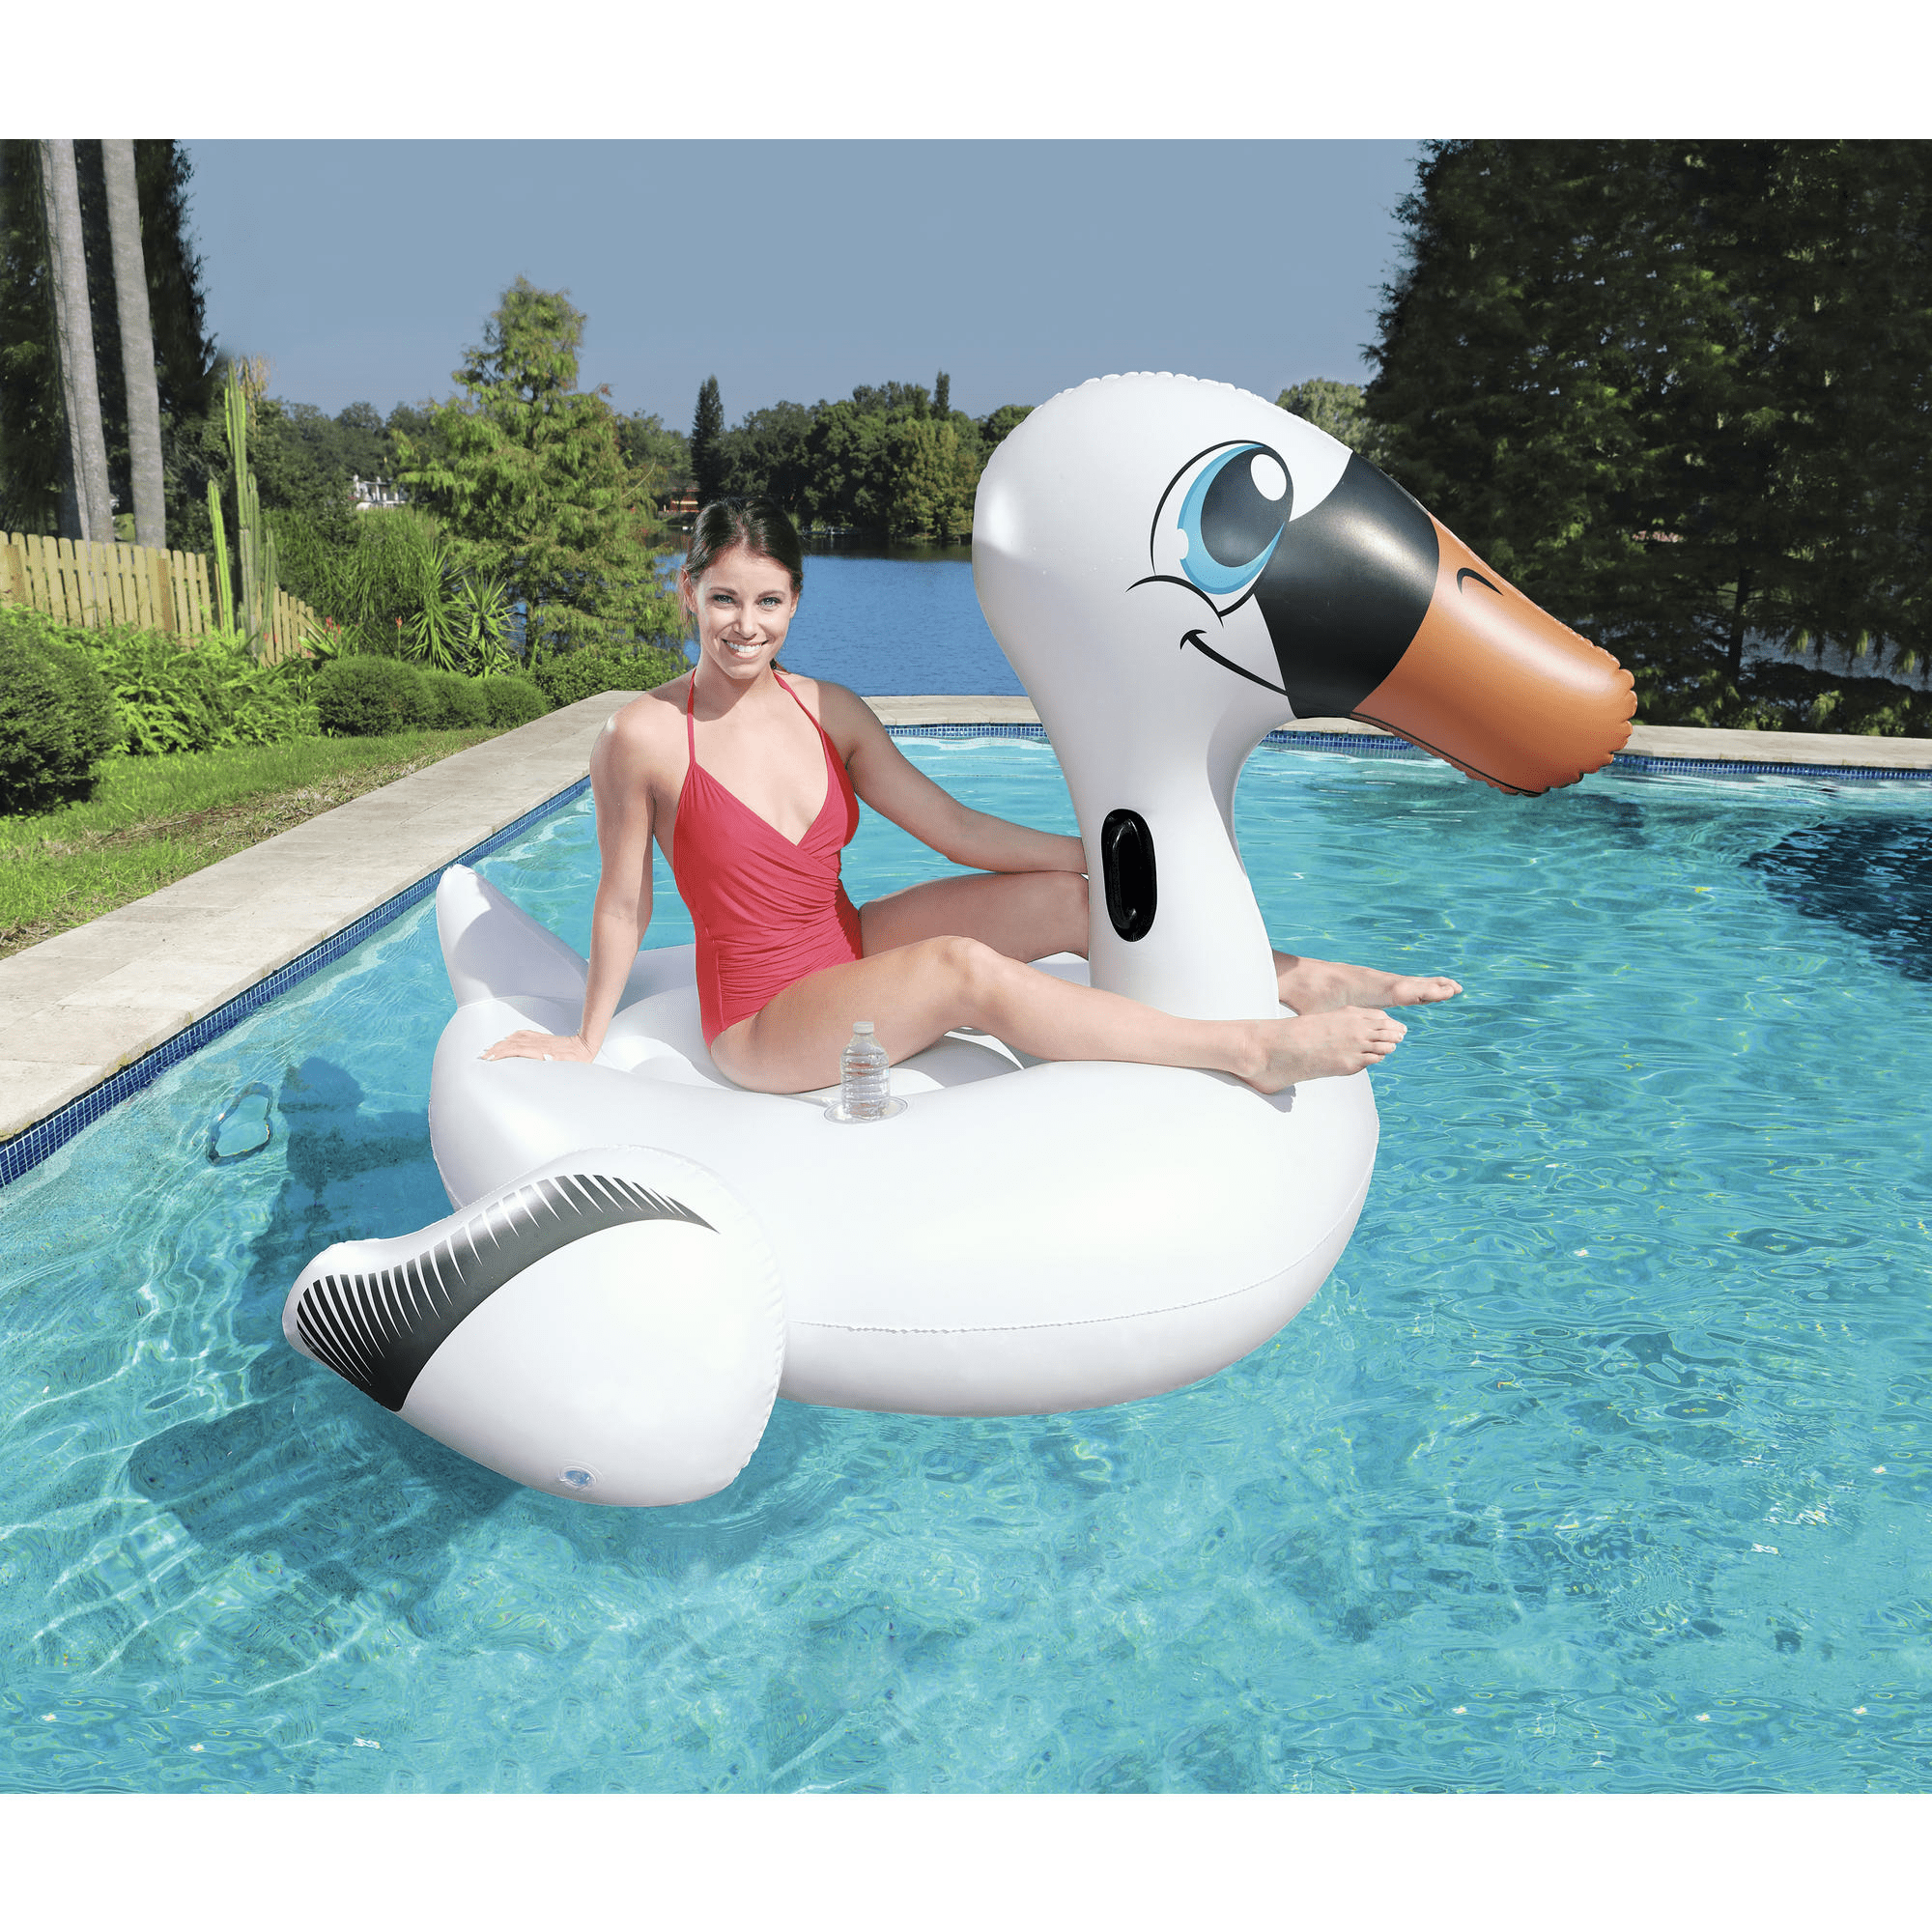 Bestway Pools Cape Town Bestway Over Sized Swan Rider Code 41109 Products